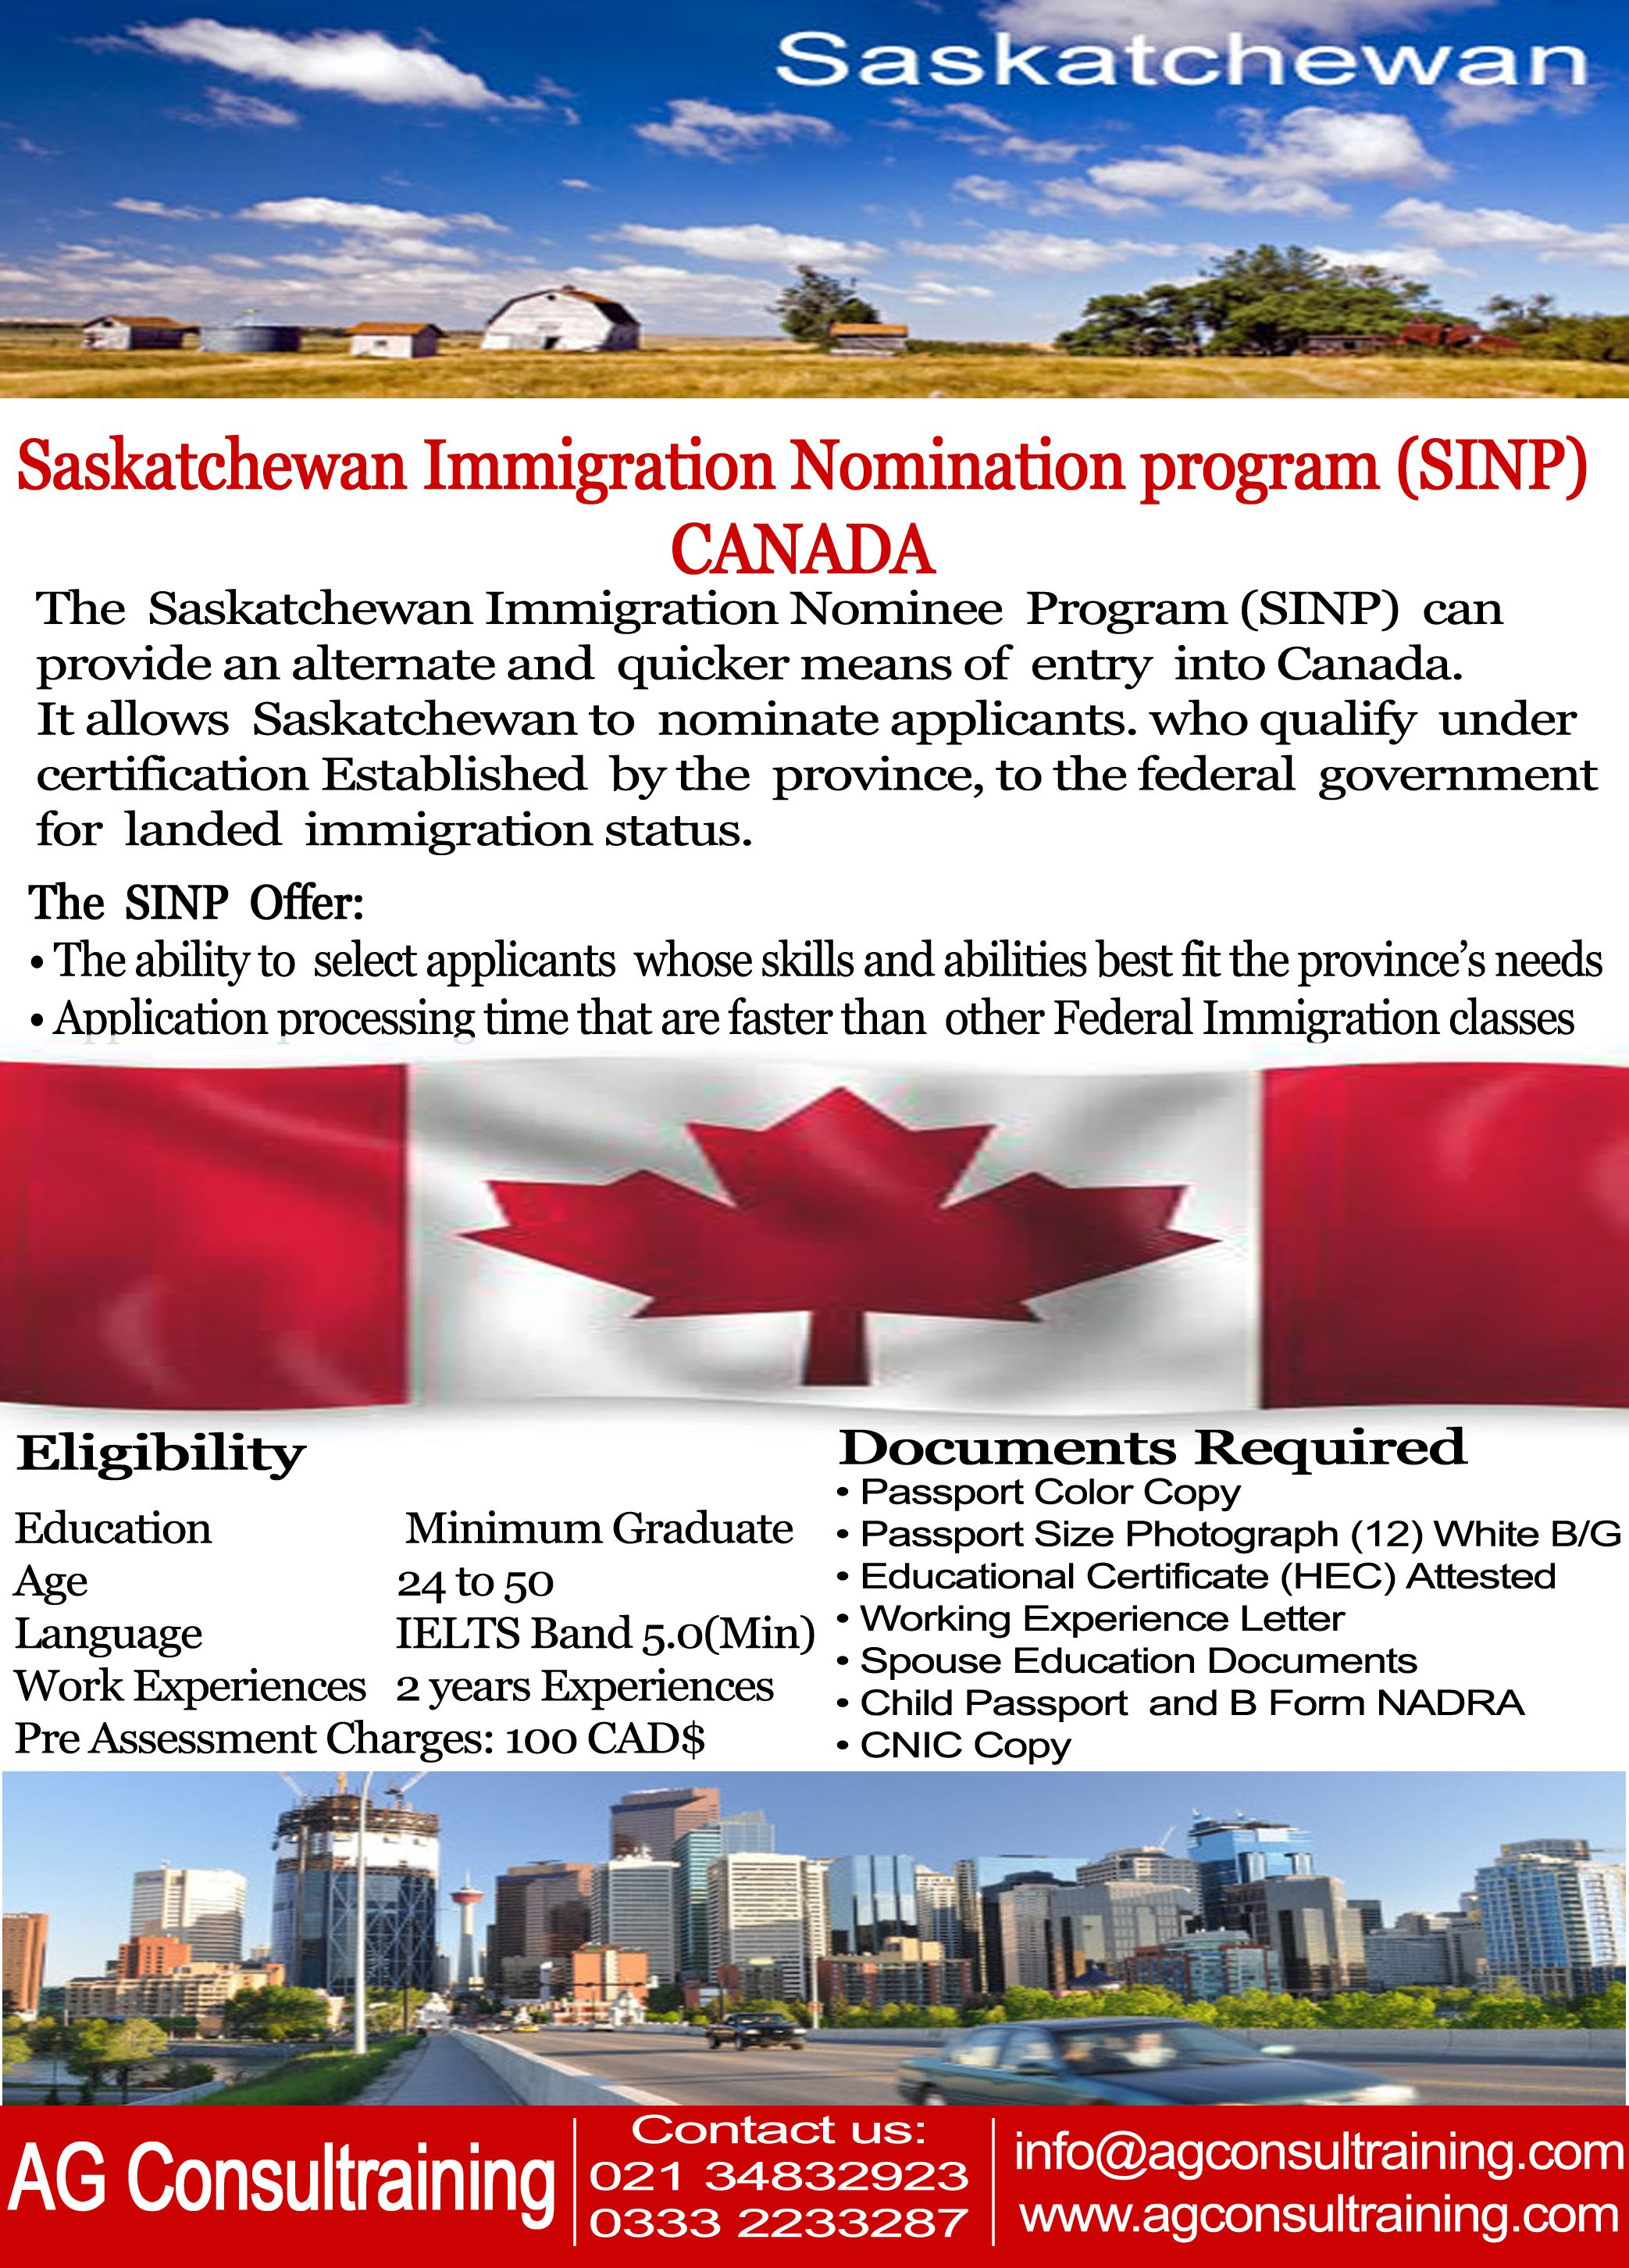 Best 25 saskatchewan immigration ideas only on pinterest maidstone united f c african american genealogy and latest news on lakers